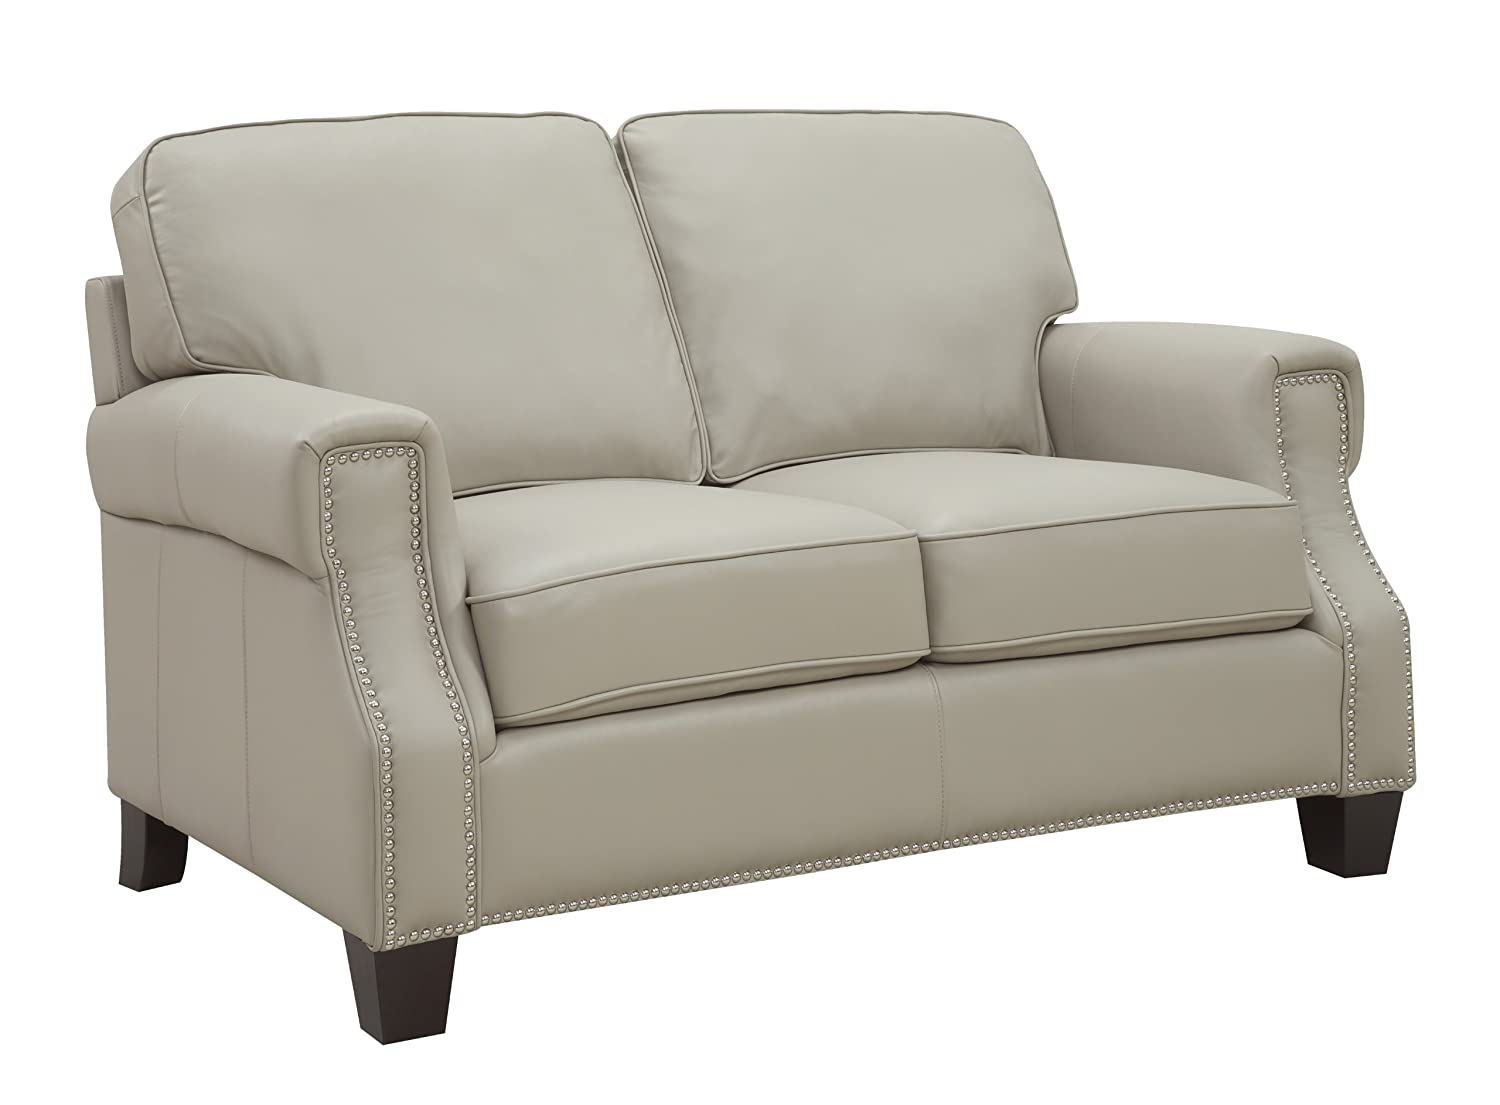 At Home Designs Uptown Loveseat - Bone